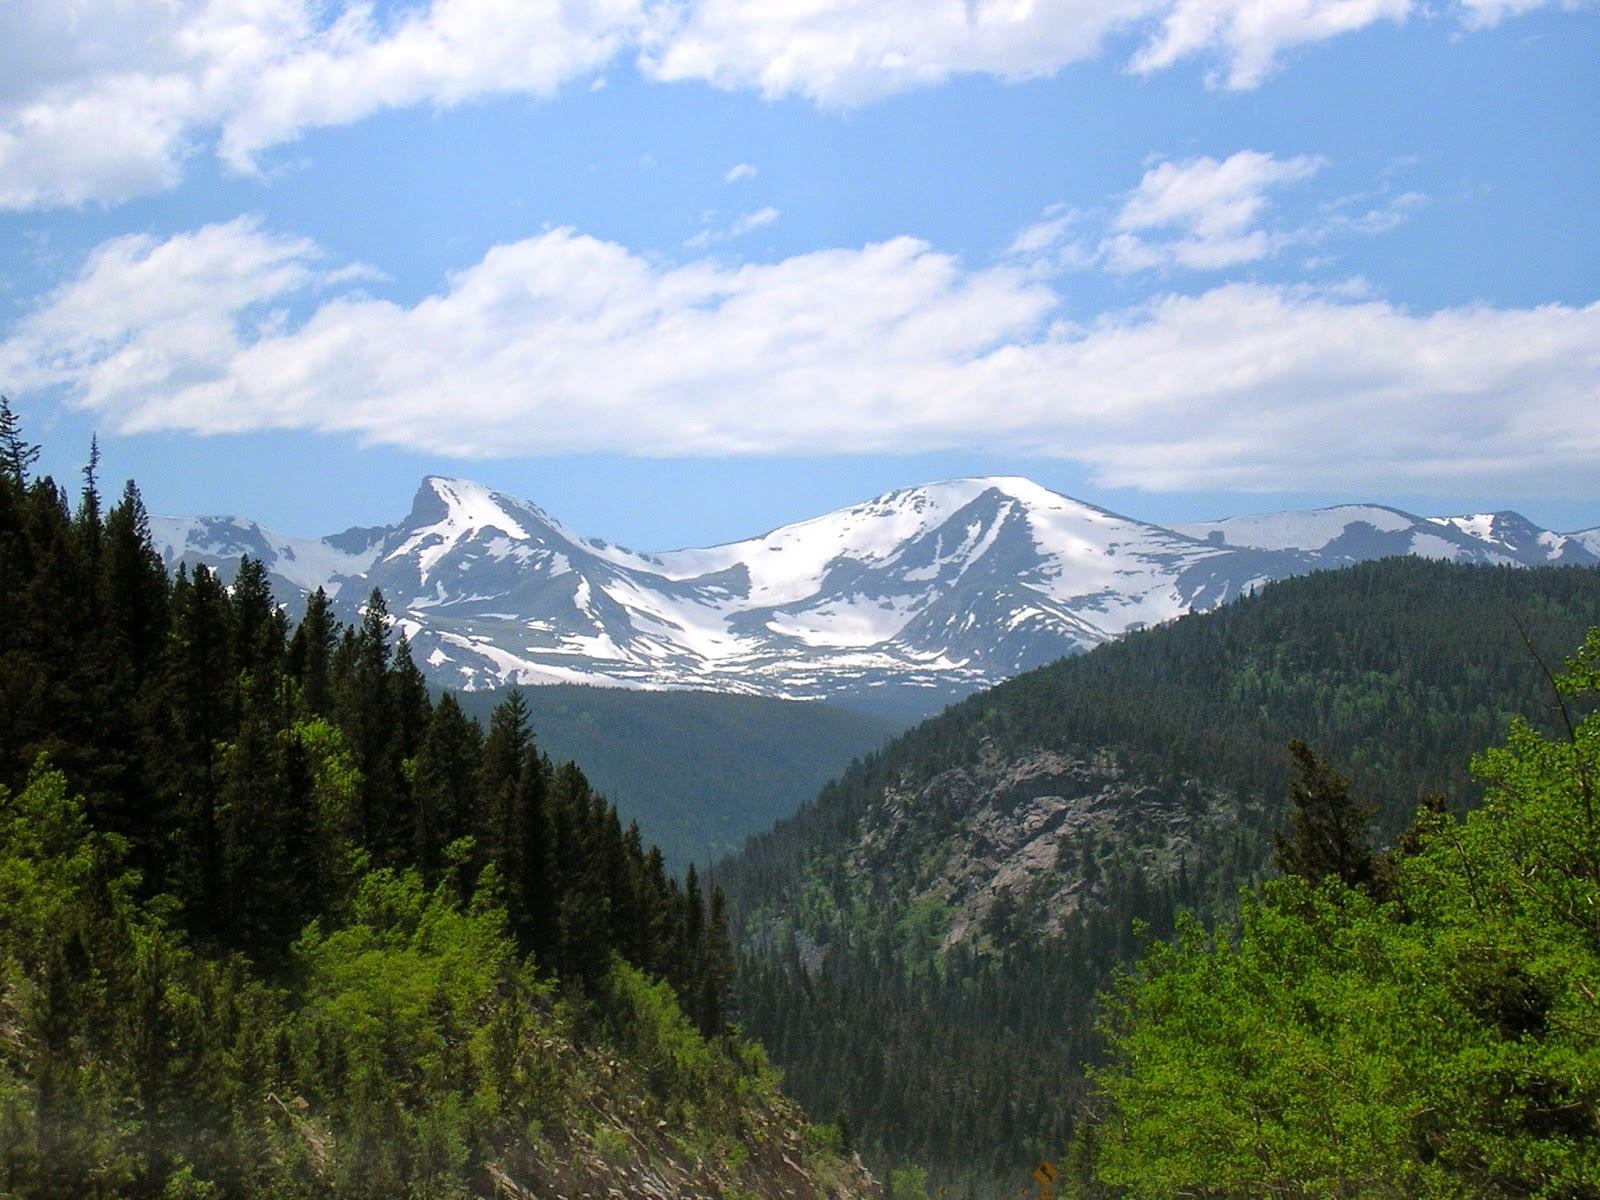 http://commons.wikimedia.org/wiki/Rocky_Mountains